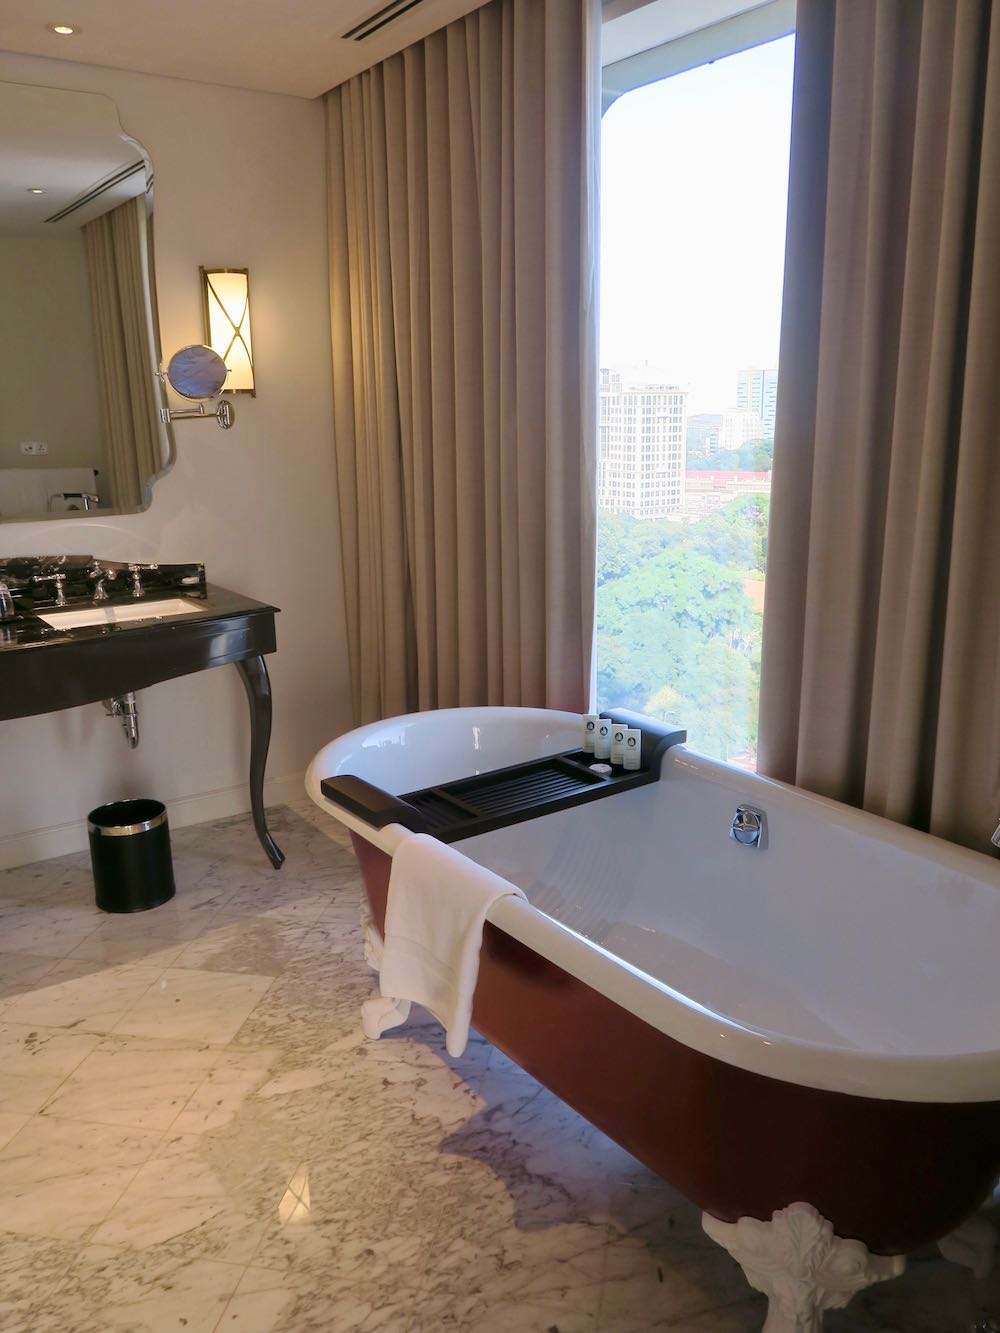 Claw-footed bath in hotel room |curlytraveller.com